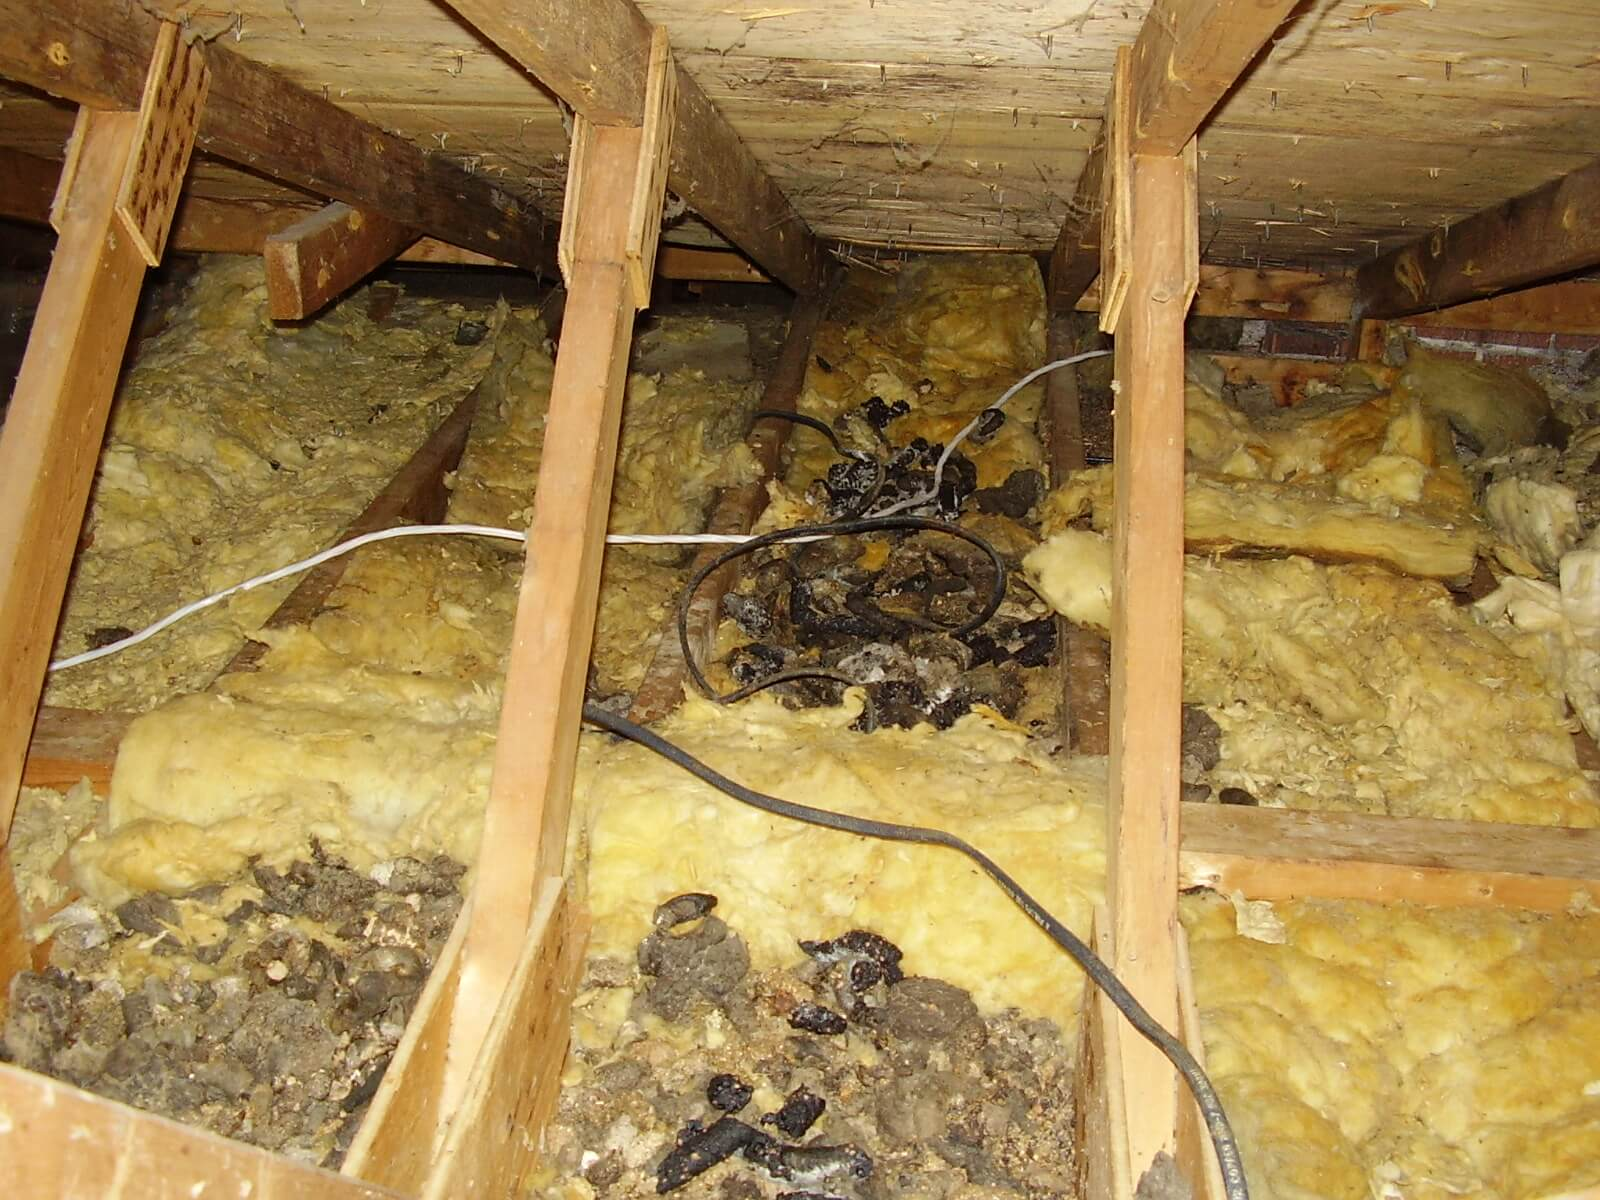 Garages And Barns The Dangers Of Raccoon Urine And Feces Skedaddle